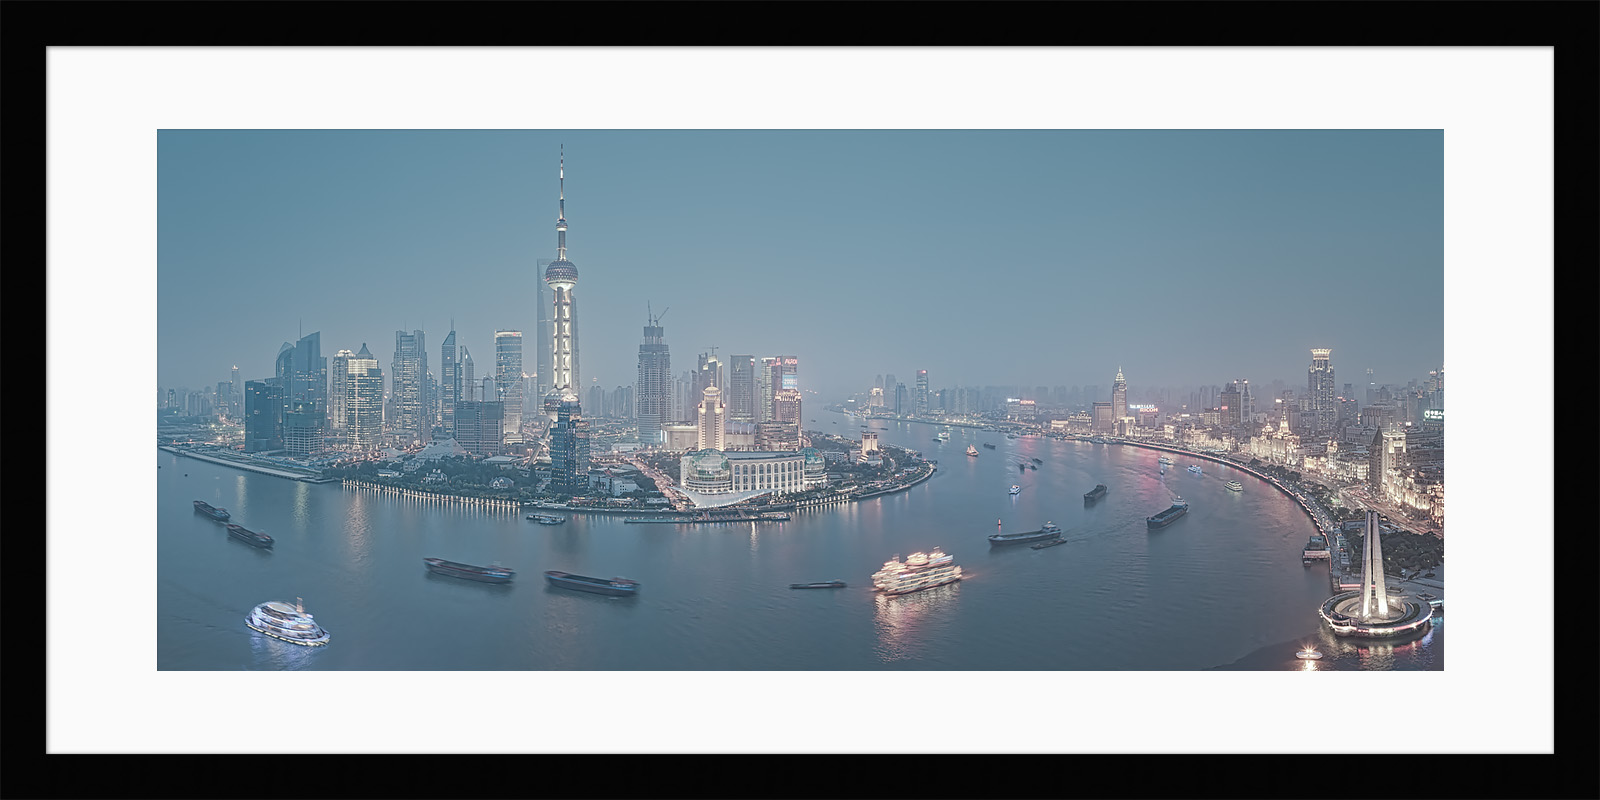 Huangpu River - Framed - China High Resolution Cityscapes